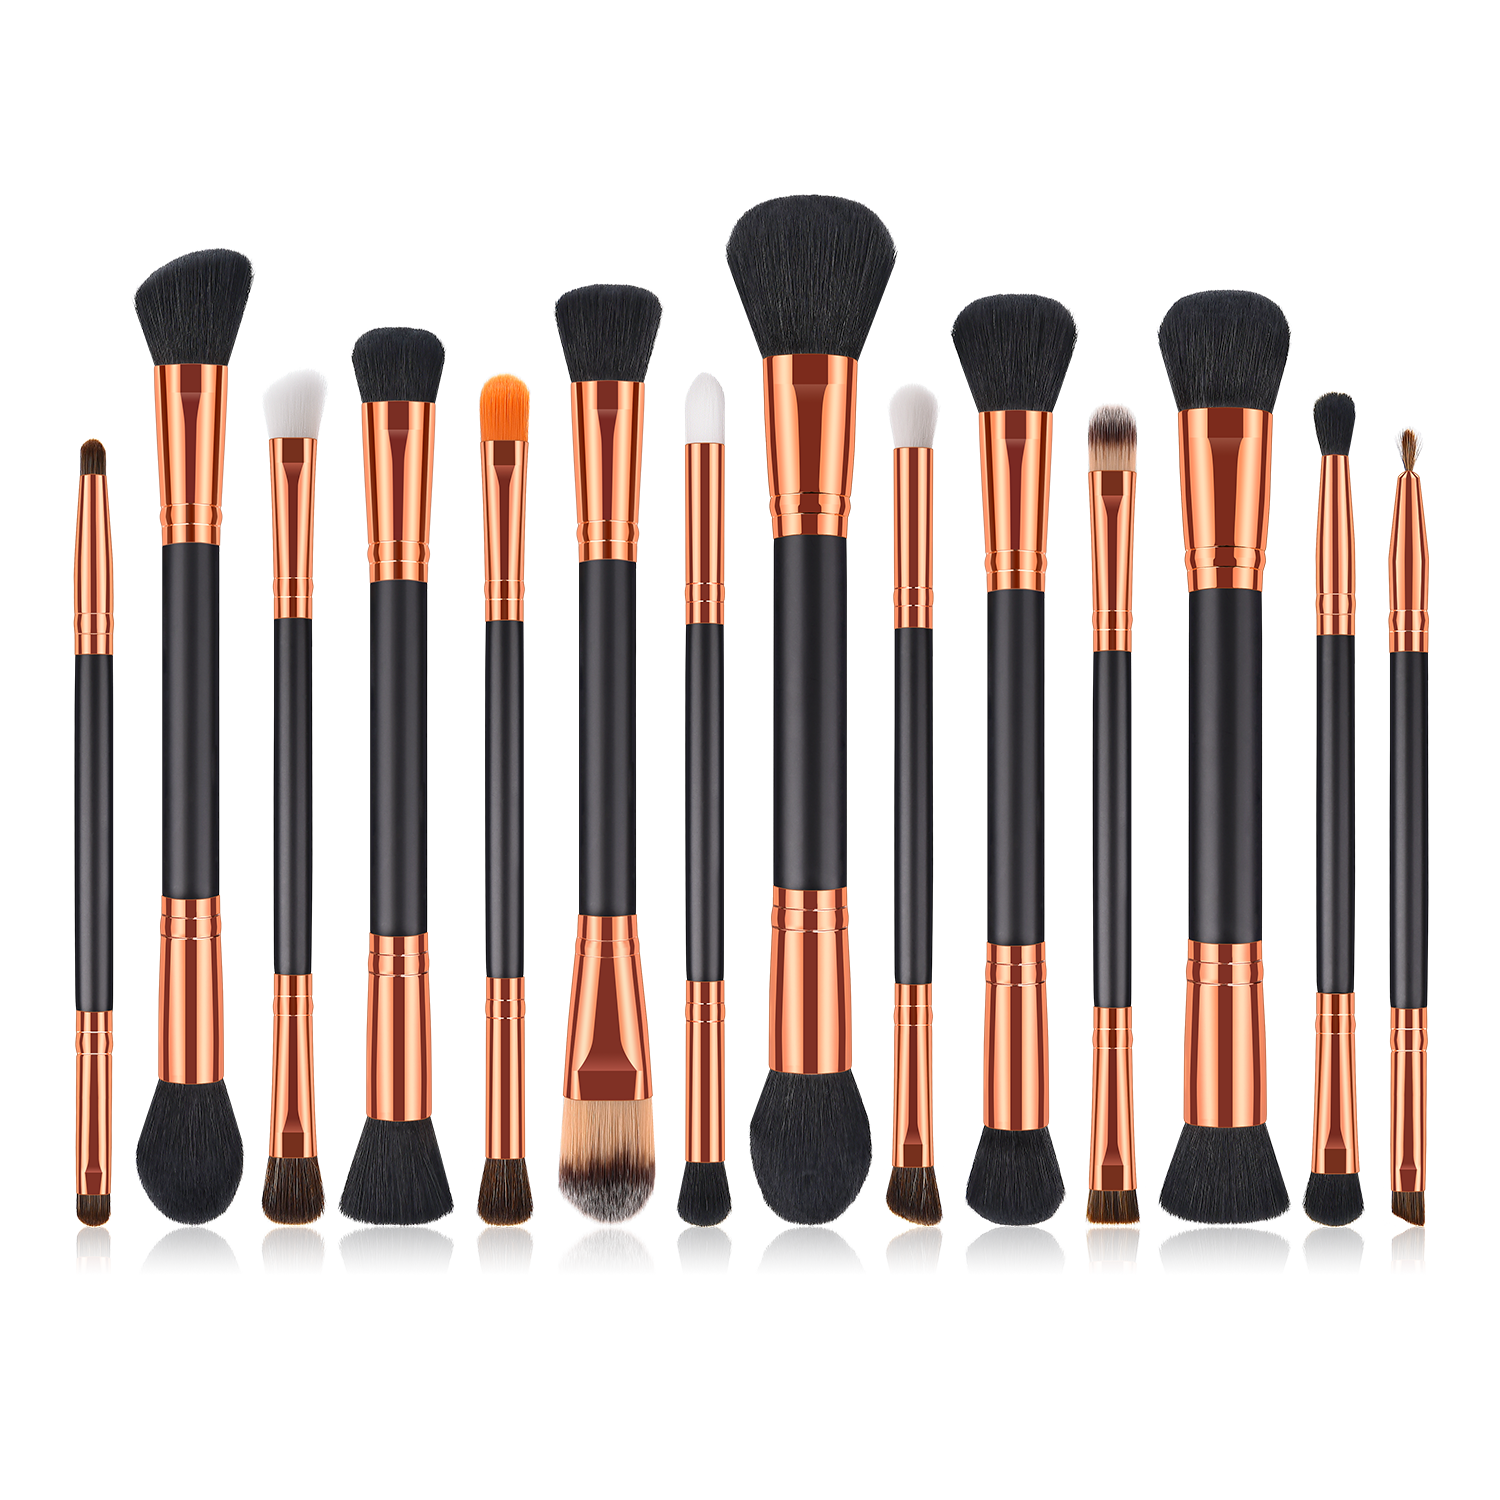 Black/gold 14 pieces makeup brushes set available